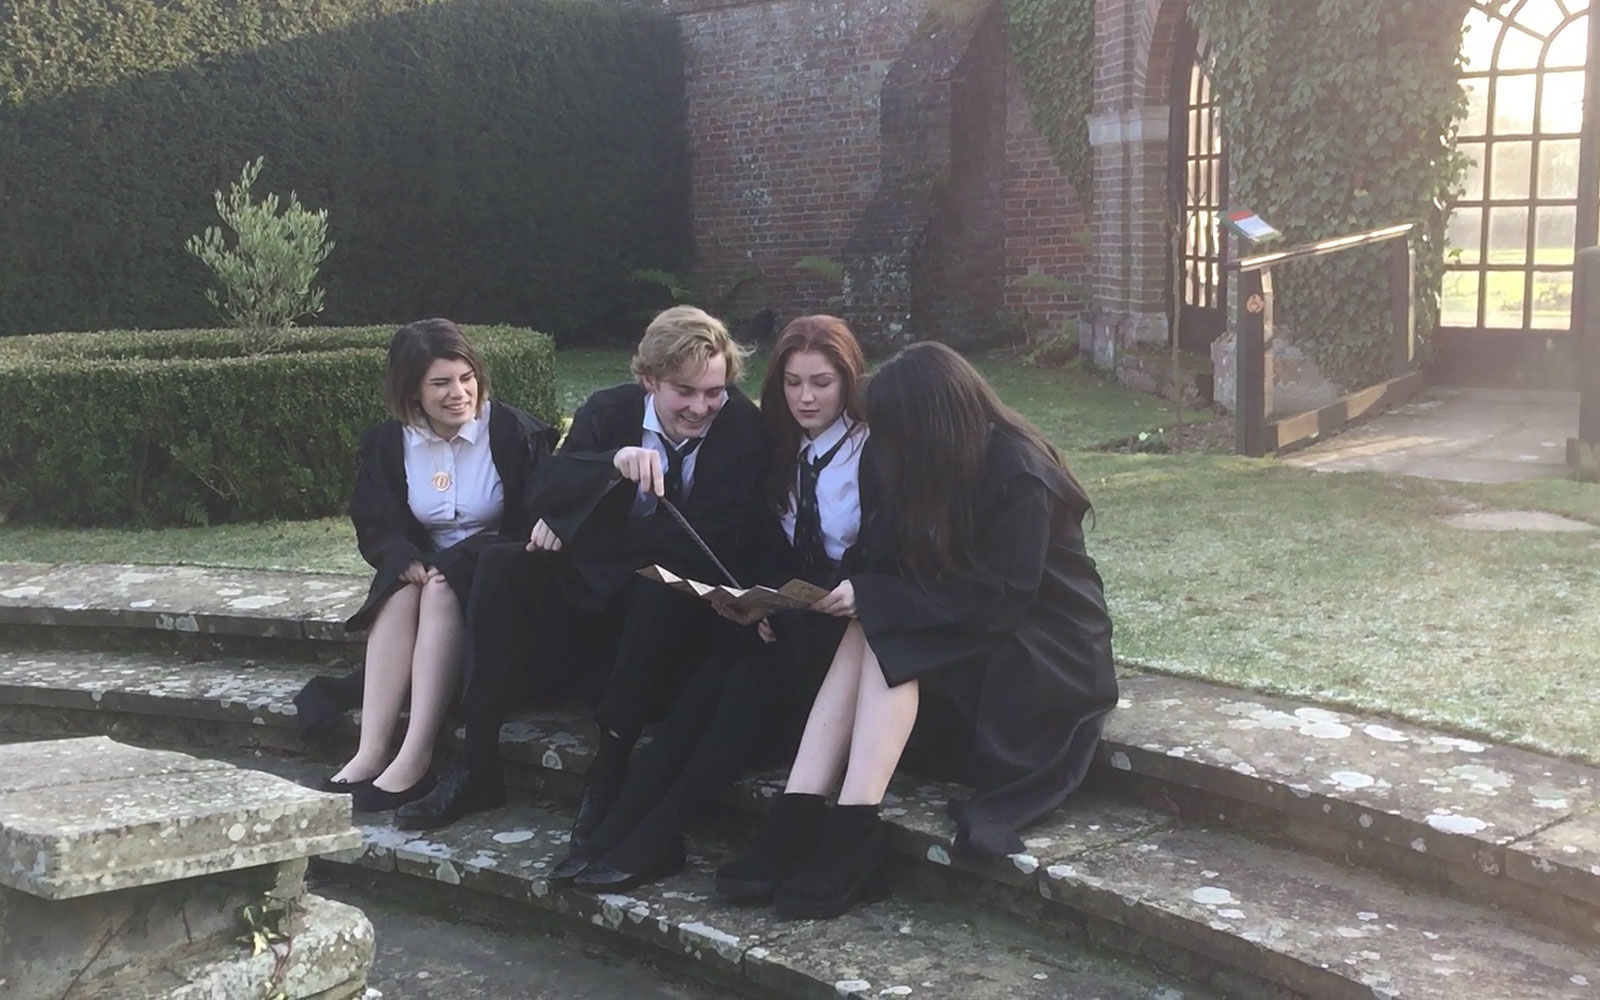 students-at-bothwell-school-WIZARD317.jpg